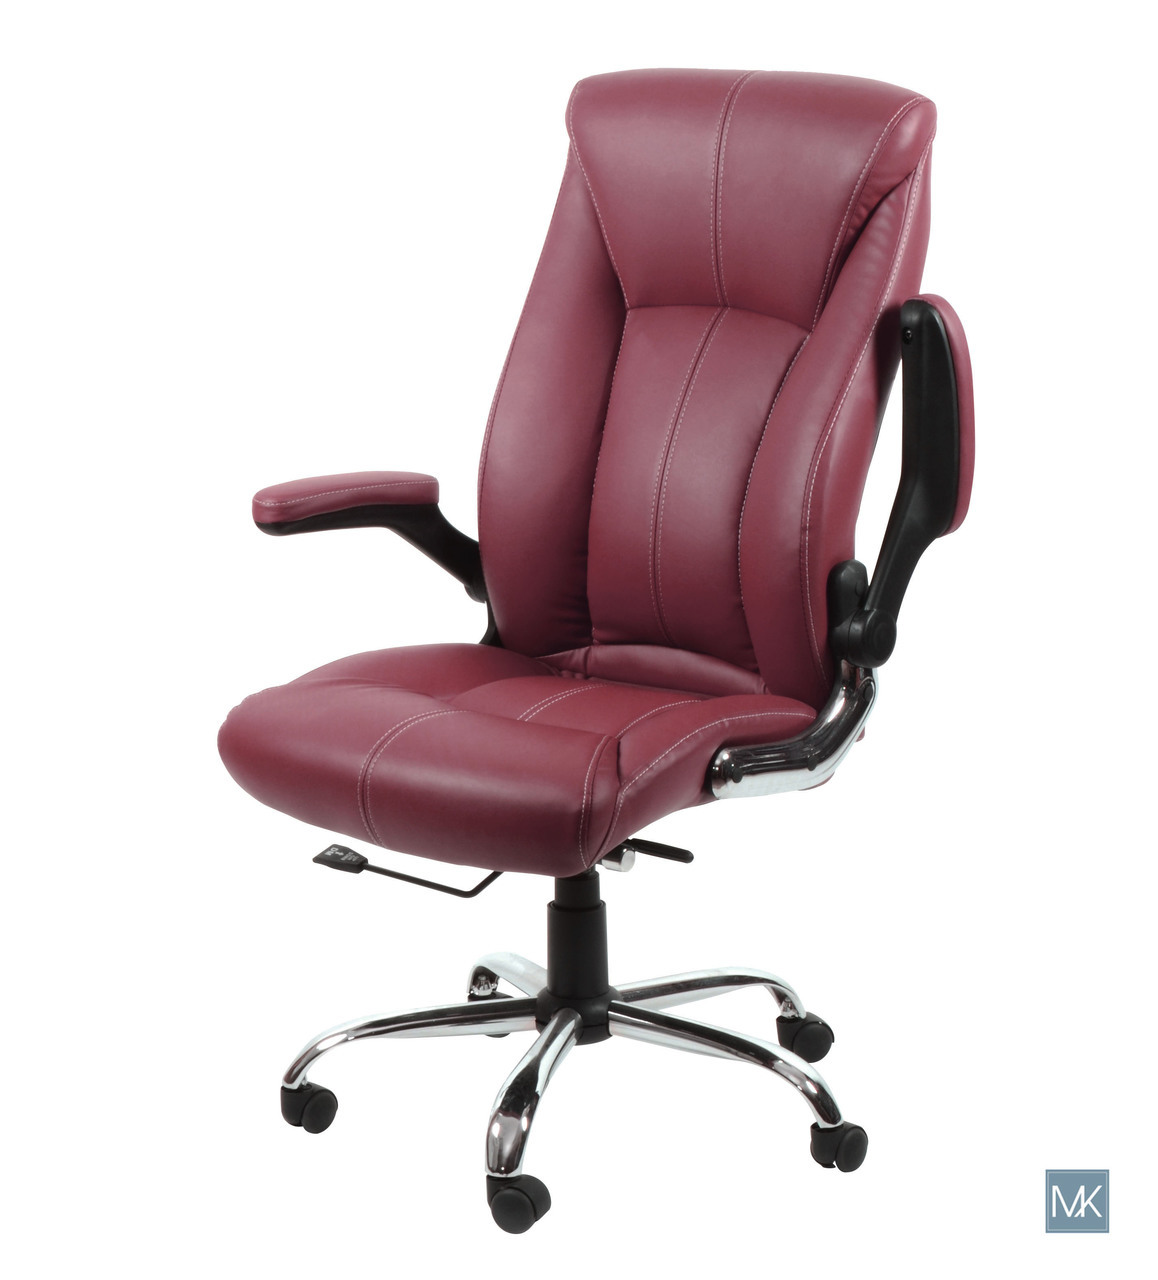 Office Chairs Office Max Max Comfort Office Chairs Arion Burgundy Desk Chairs For